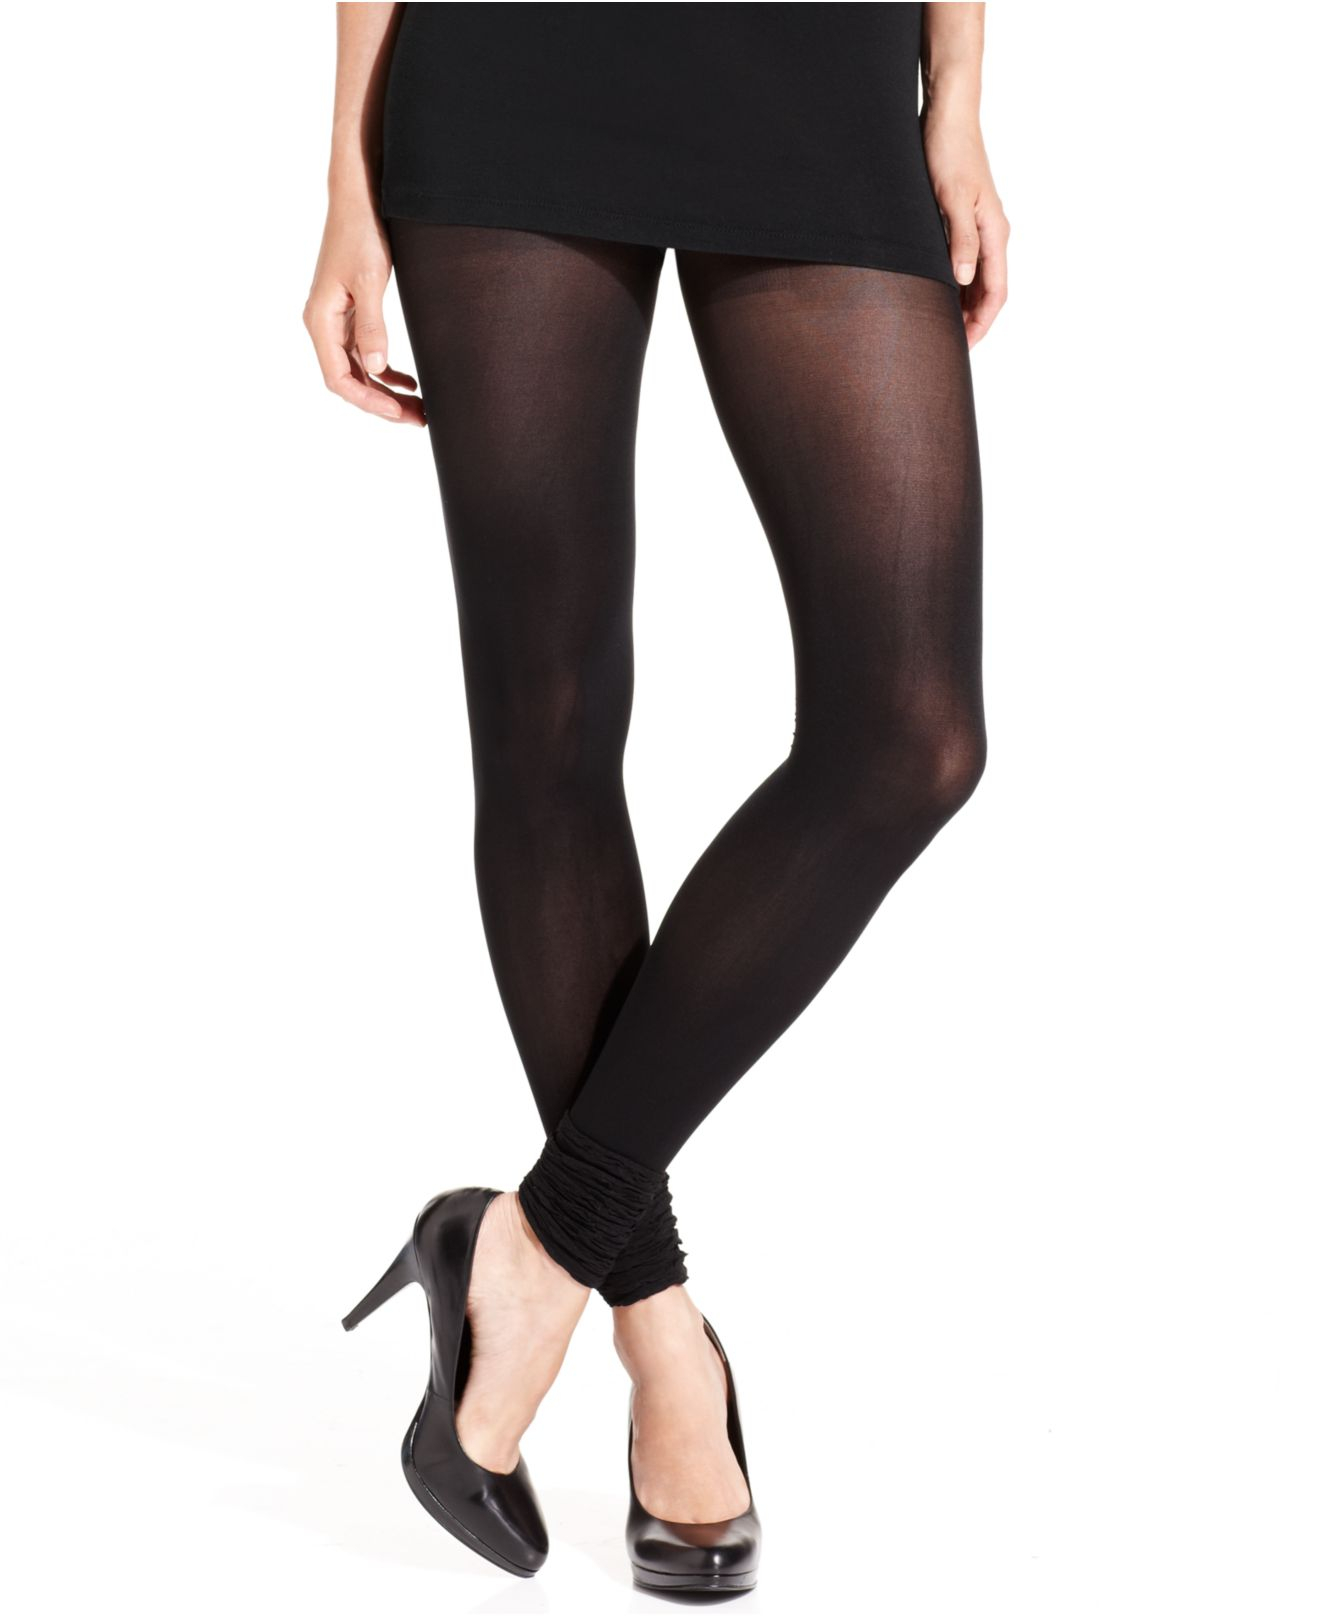 fcb6fb606 Jessica Simpson Footless Tights With Ruffles Tights in Black - Lyst